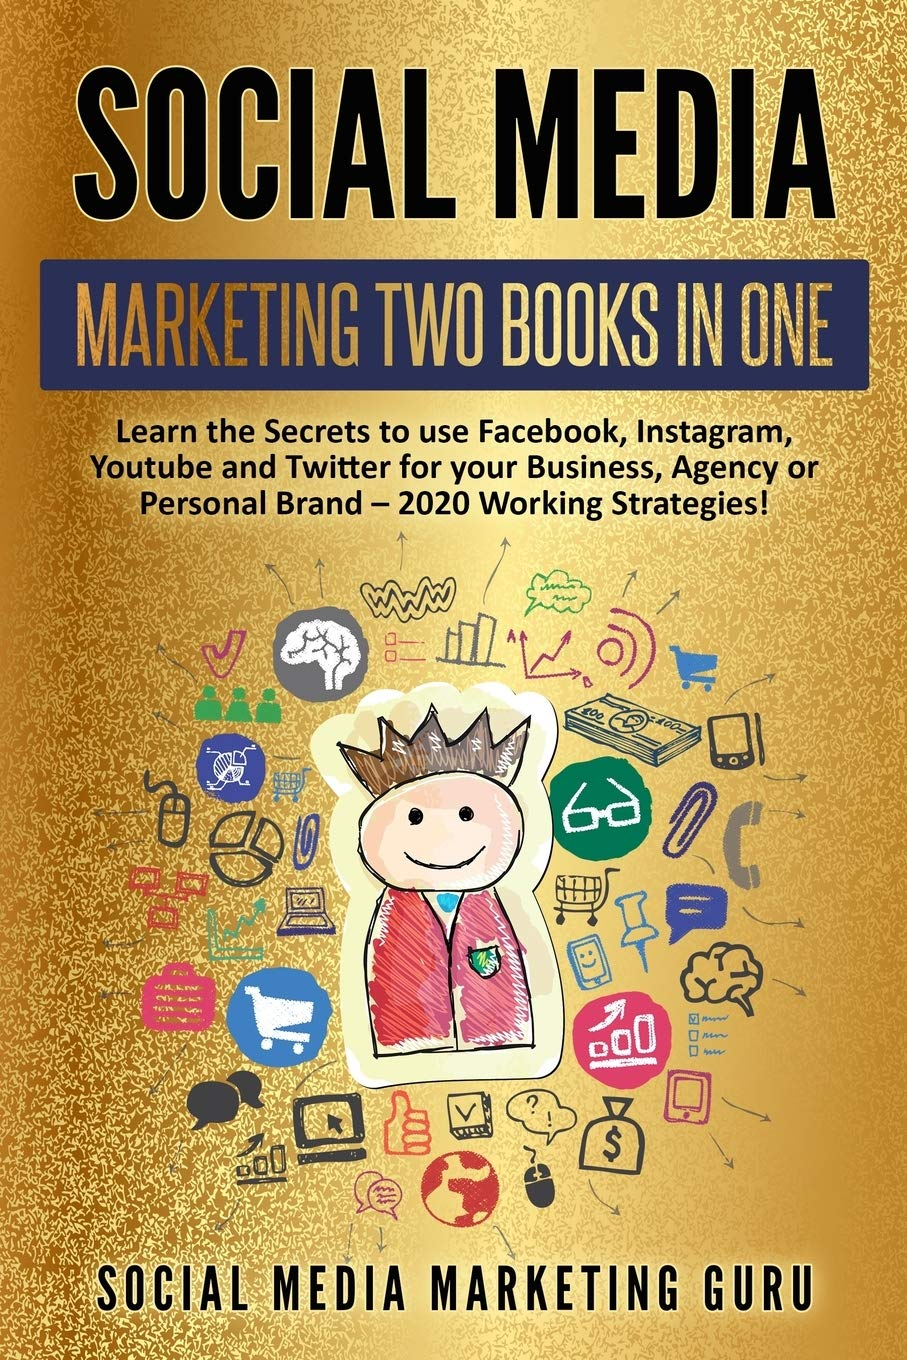 Social Media Marketing 2 Books In 1  Learn The Secrets To Use Facebook Instagram Youtube And Twitter For Your Business Agency Or Personal Brand – 2020 Working Strategies